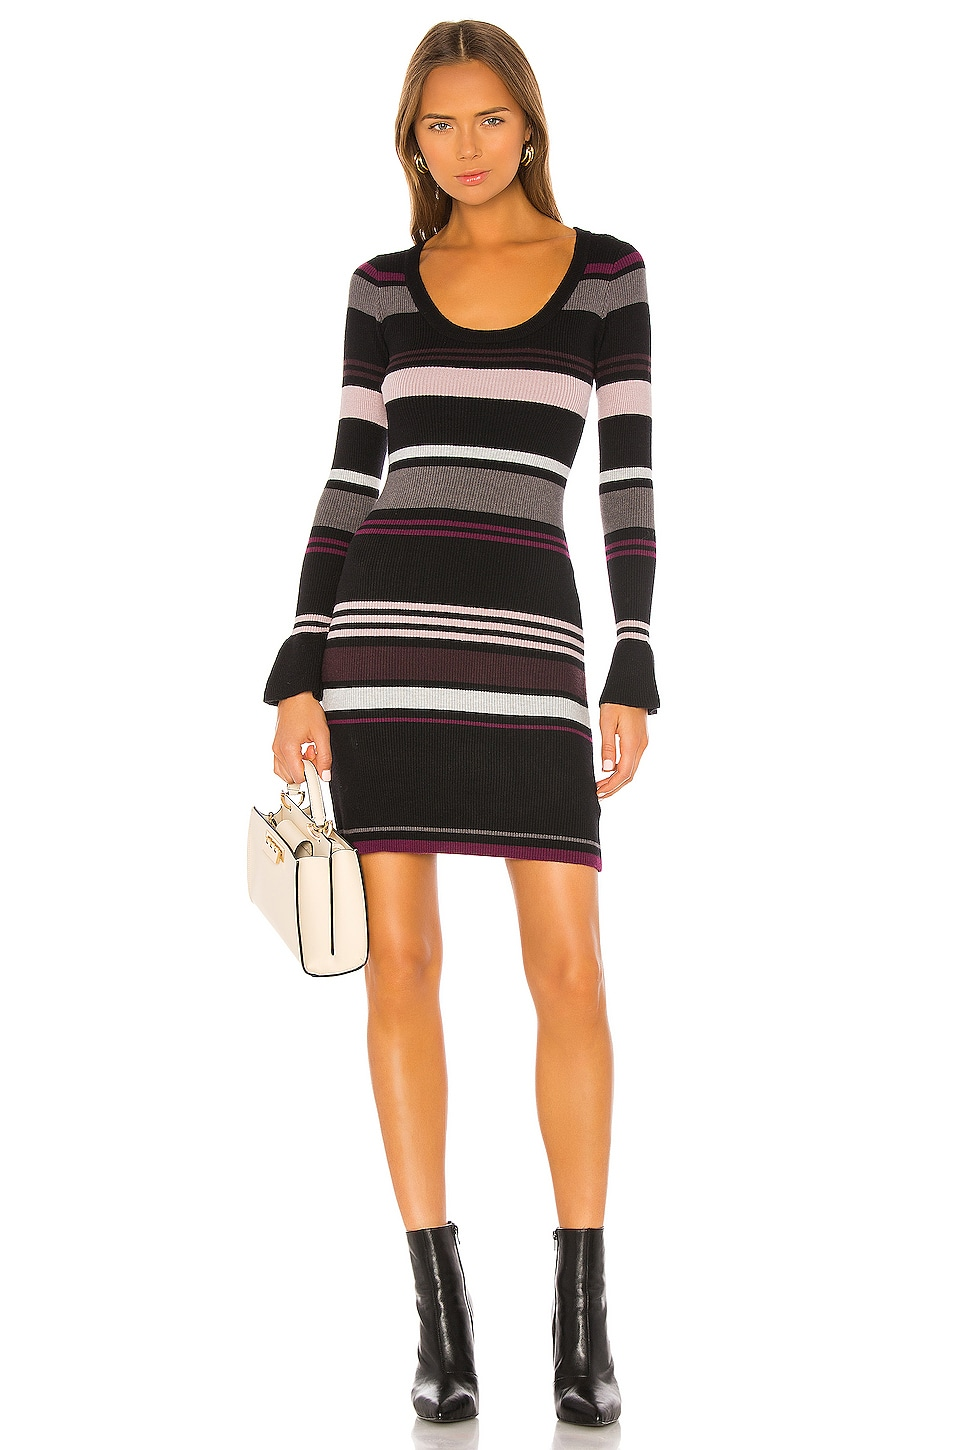 cupcakes and cashmere Cosette Sweater Dress in Black